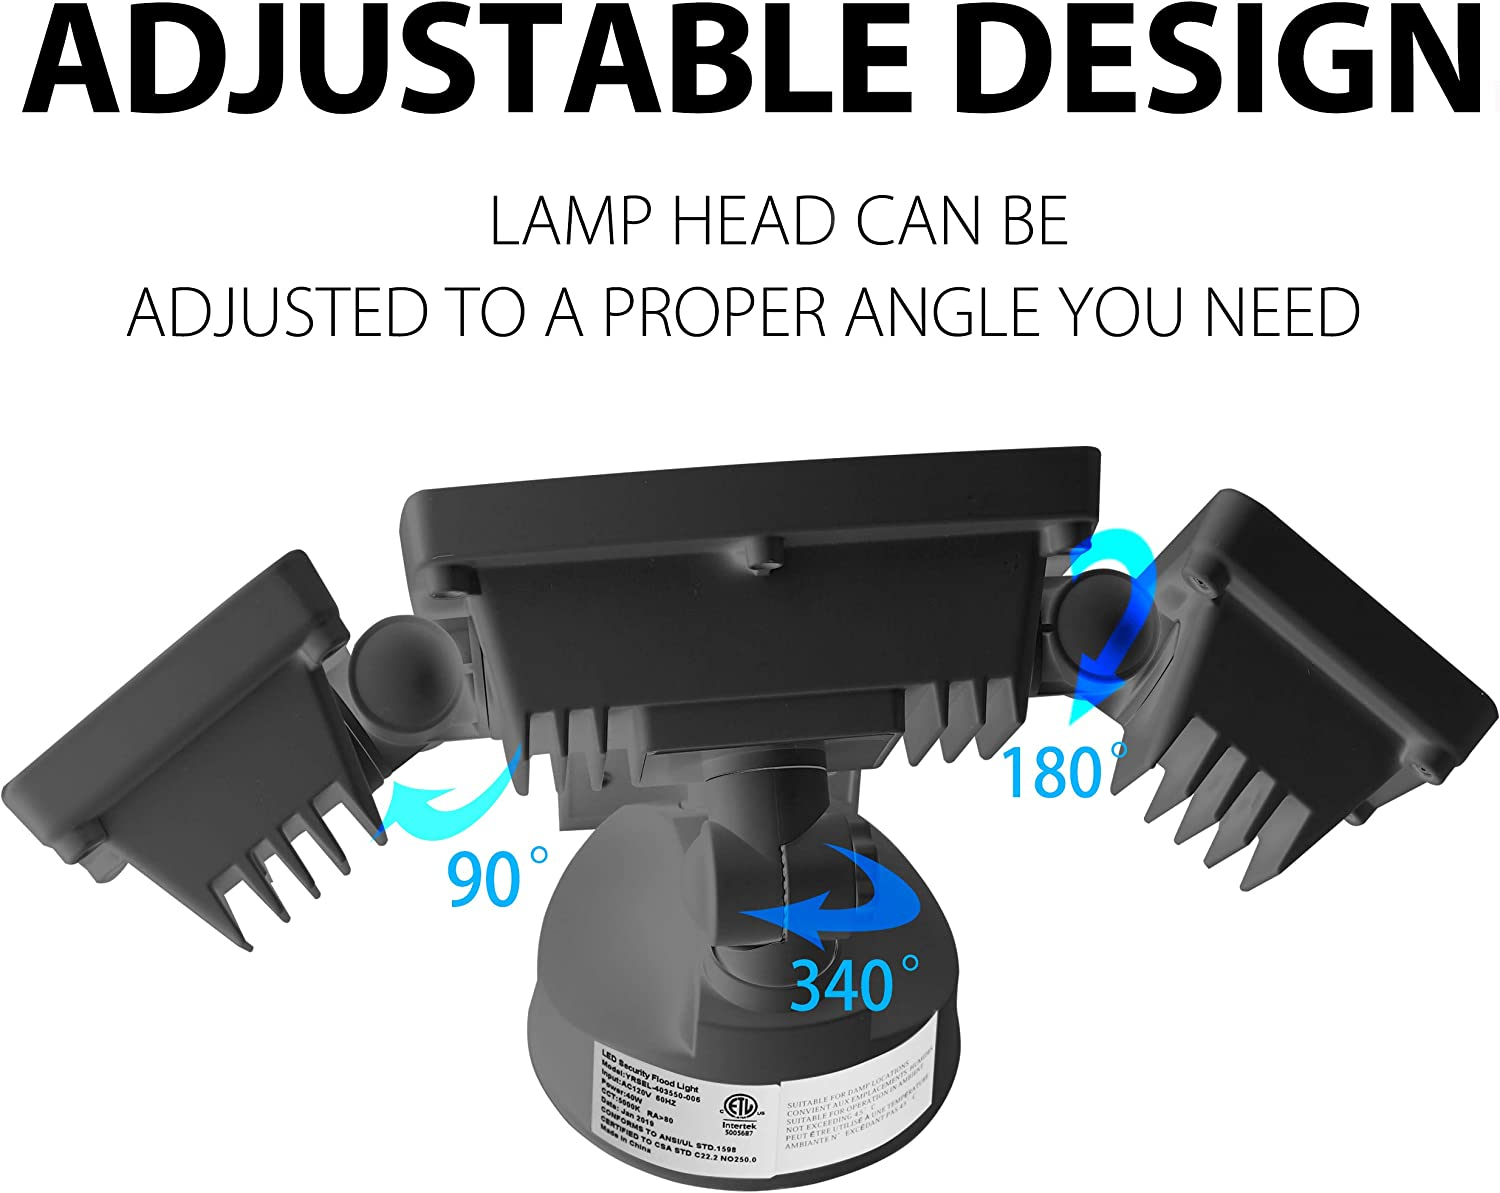 30W 5000K Super Bright Outdoor Flood Light Amico 3500LM LED Security Lights Outdoor Garden Patio 3 Head Adjustable IP65 Waterproof Porch/&Stair Exterior Light for Garage ETL Certificated